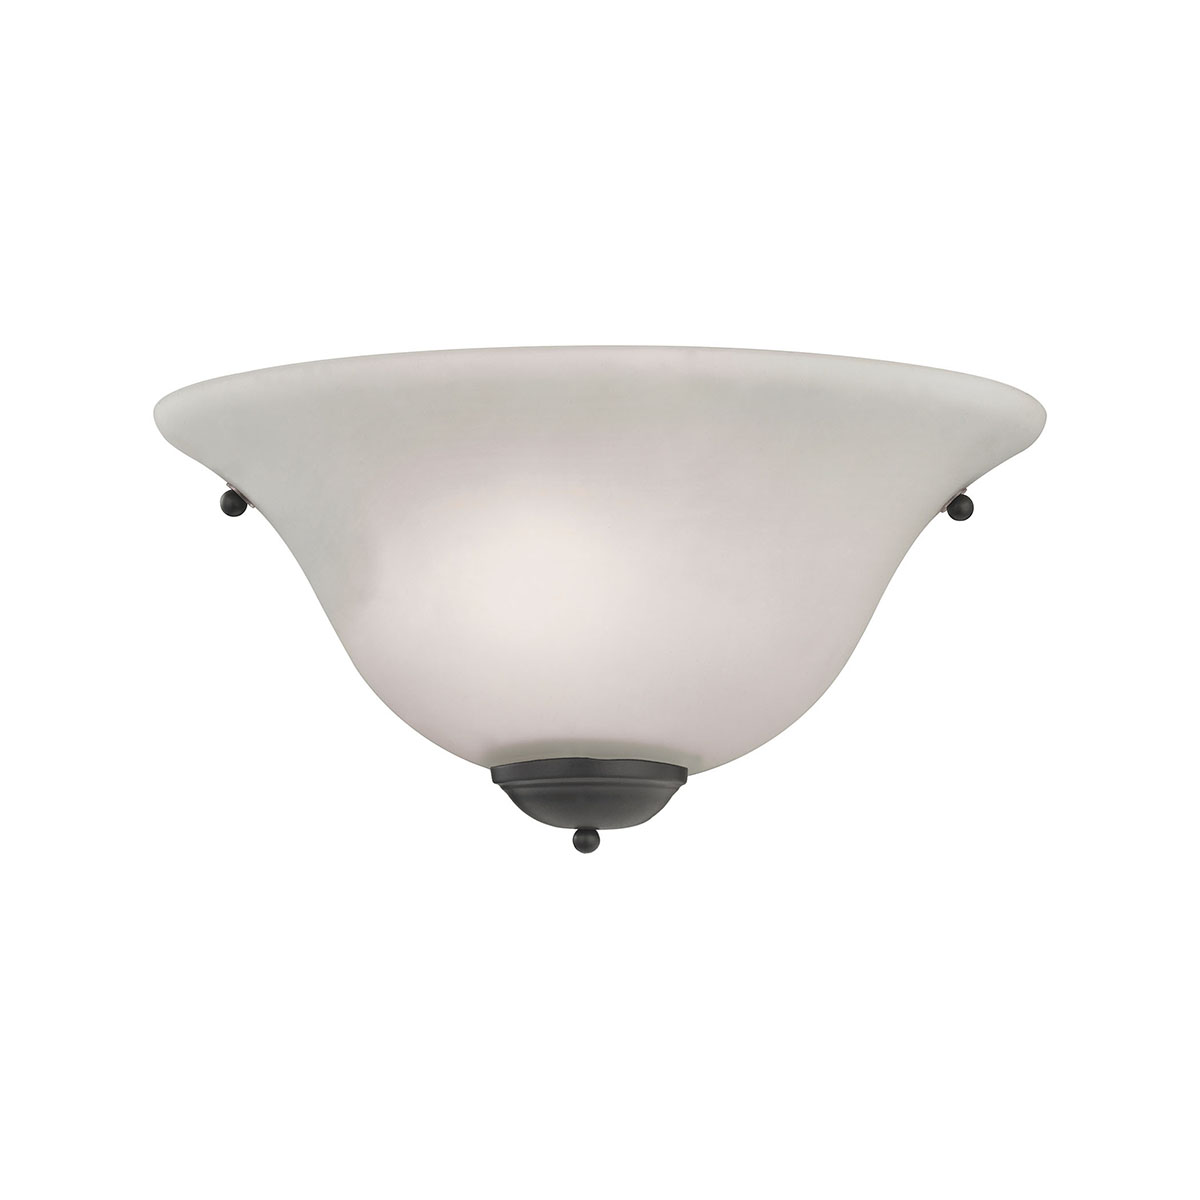 1 Light Wall Sconce In Oil Rubbed Bronze - image 1 de 1